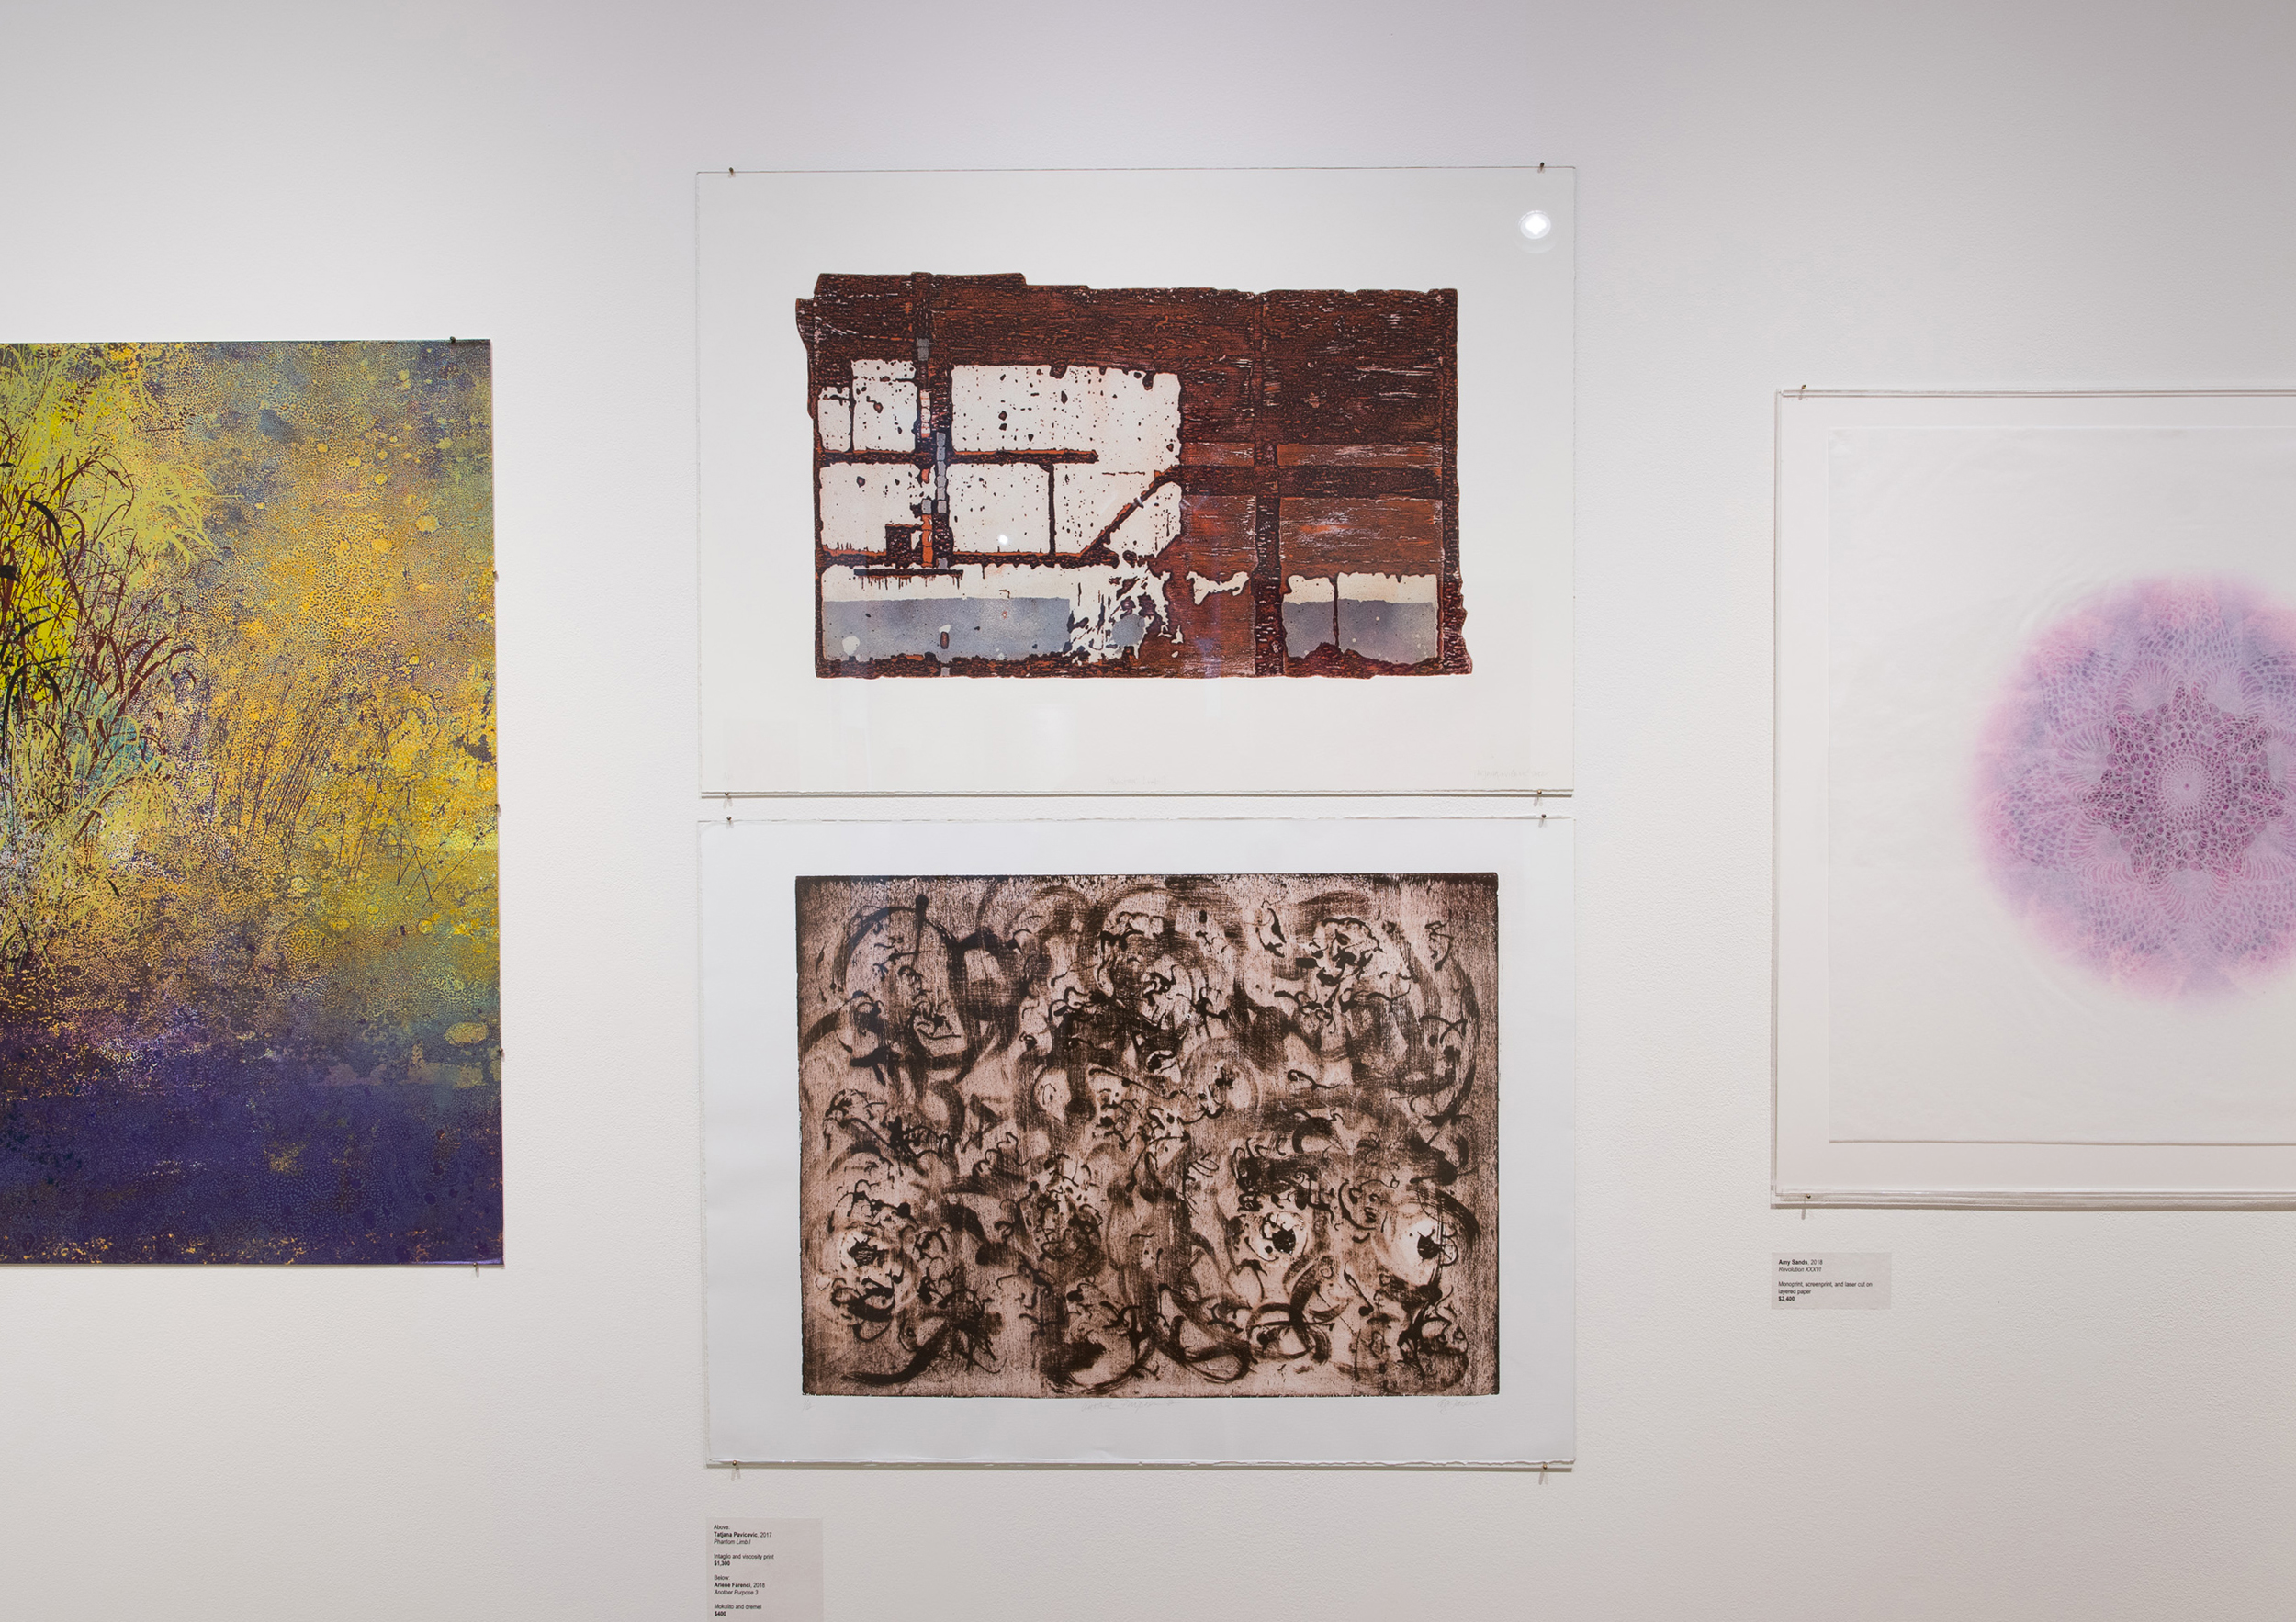 Highpoint PrintmakingStand Out Prints Exhibit180927a0456.JPG